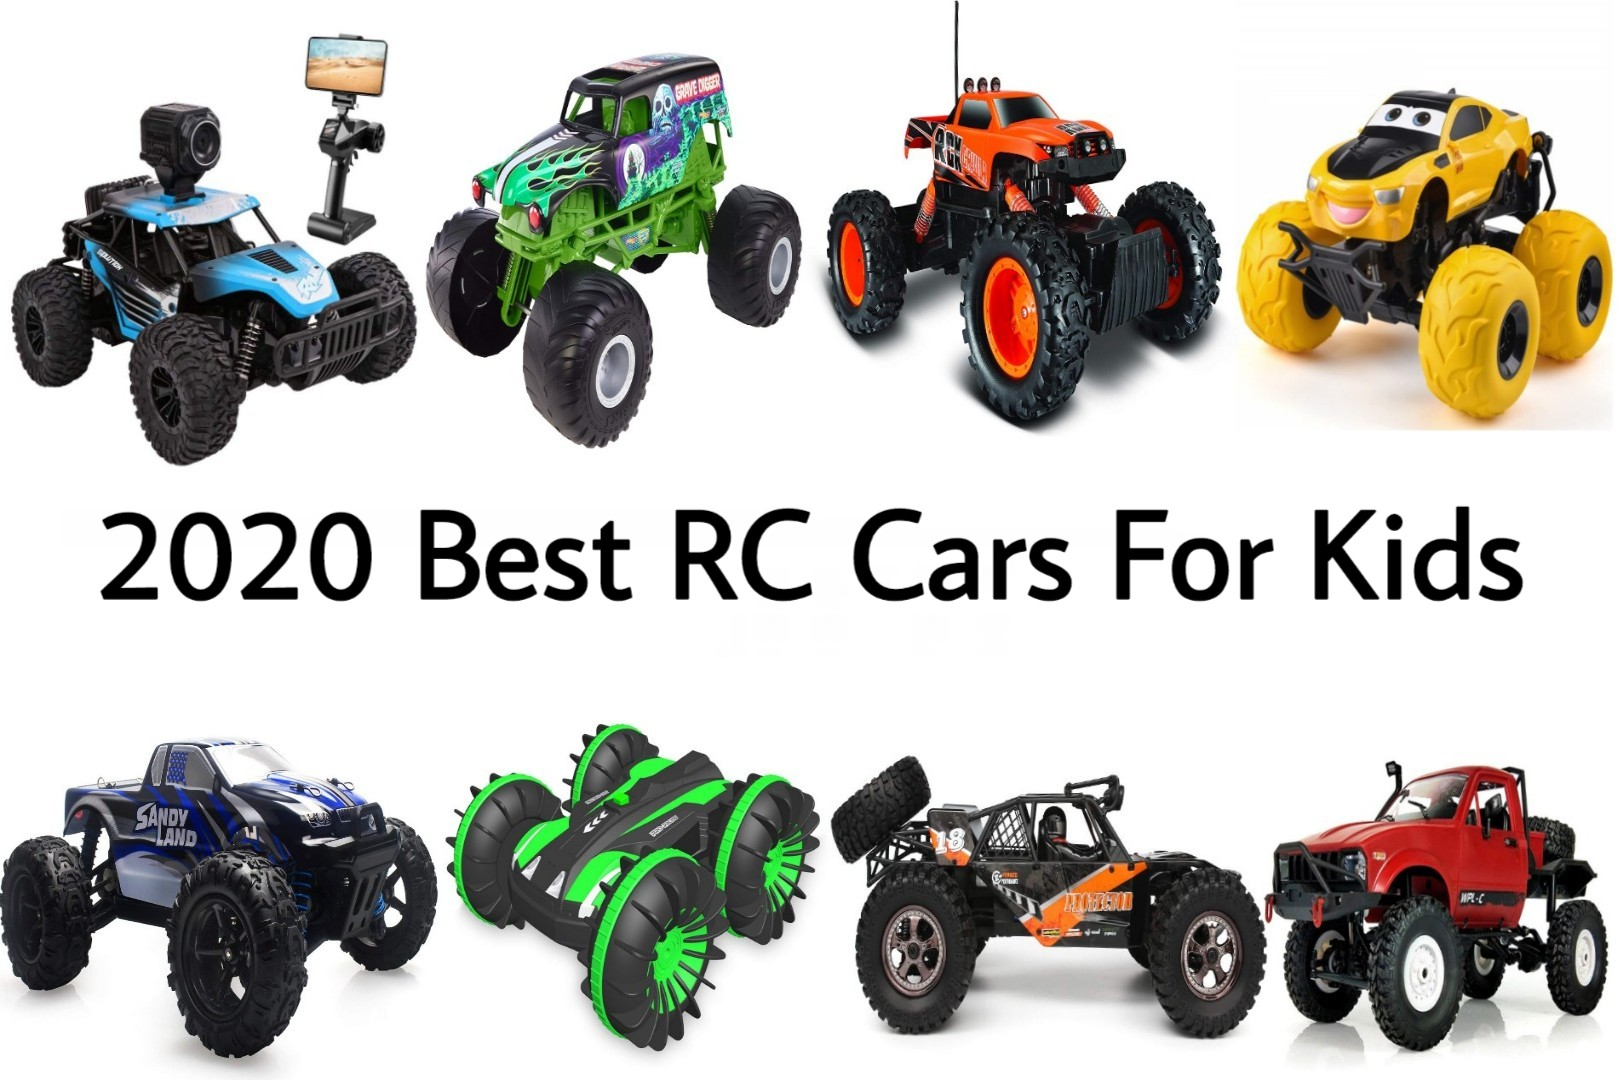 2020 Best Remote Control Cars for Kids